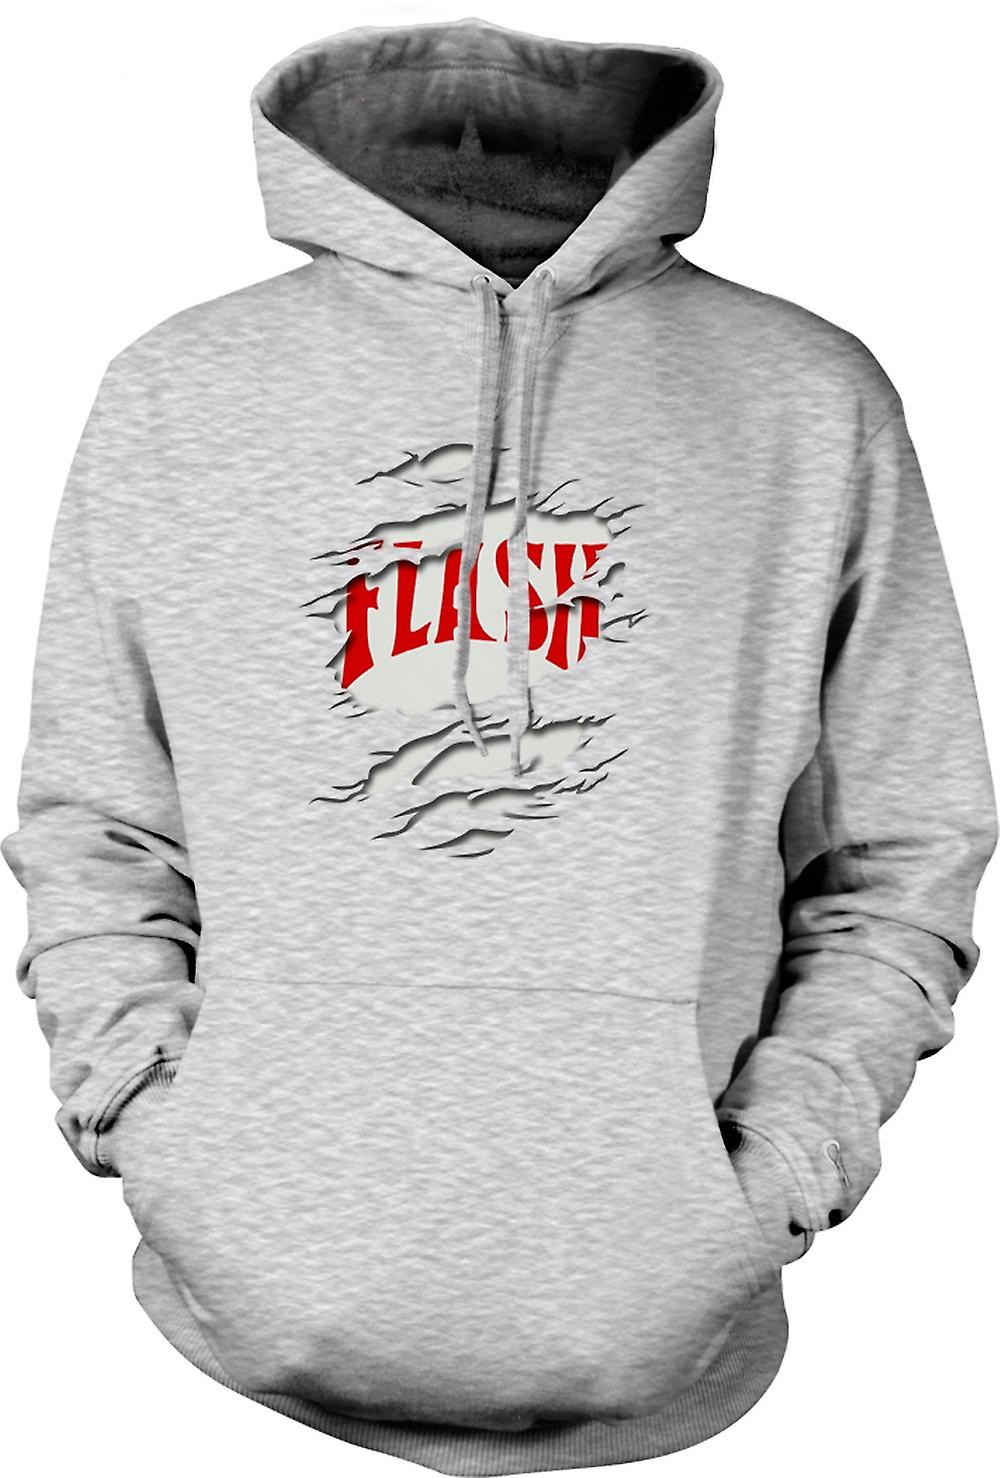 Mens Hoodie - Flash Gordon - Ripped Effect